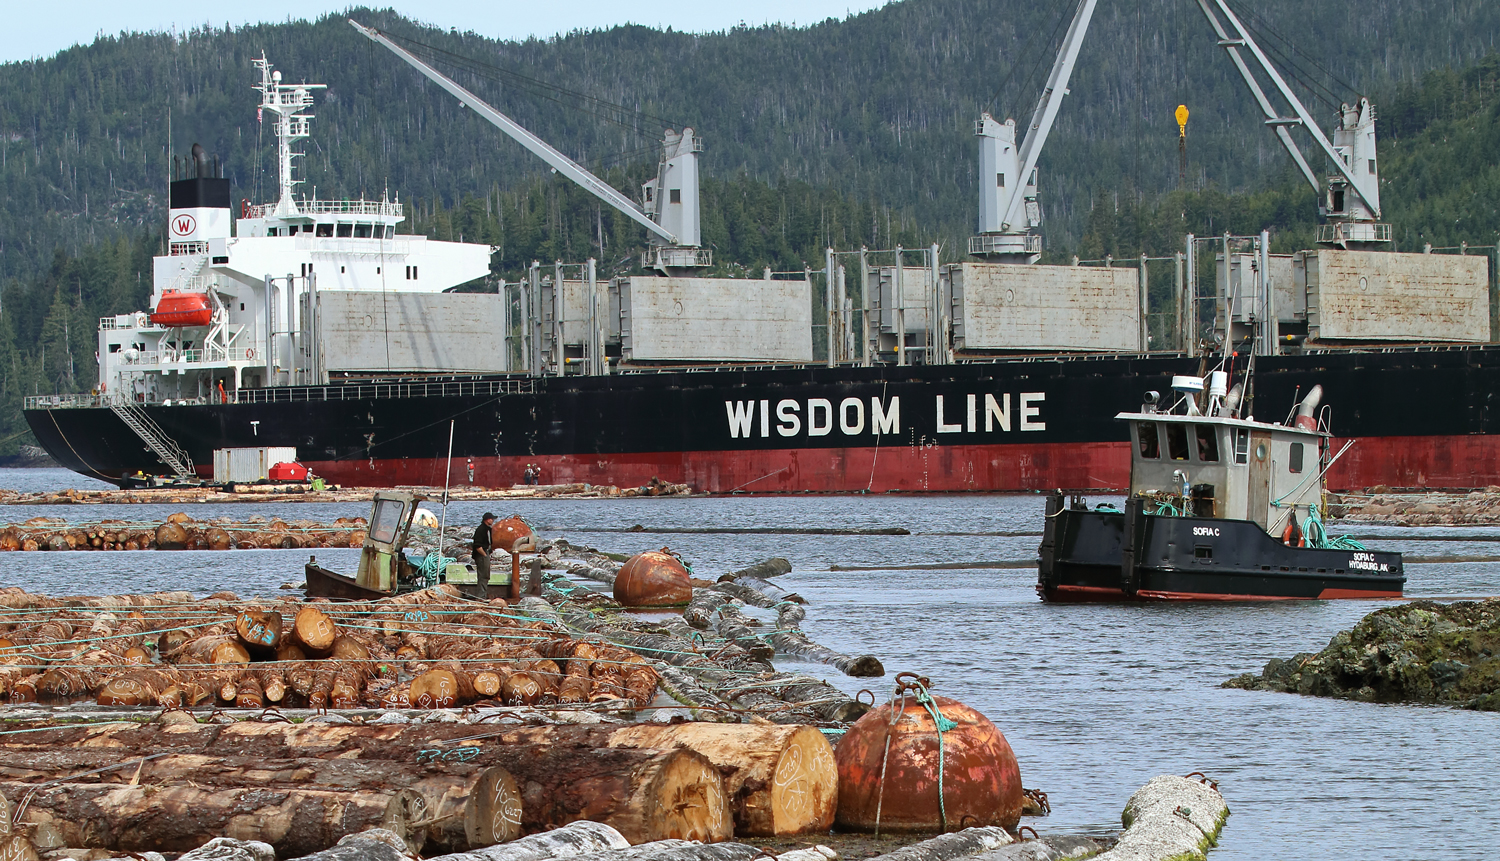 Pusher tug Sophia C assisting in log loading near Prince of Wales Island in Southeast Alaska